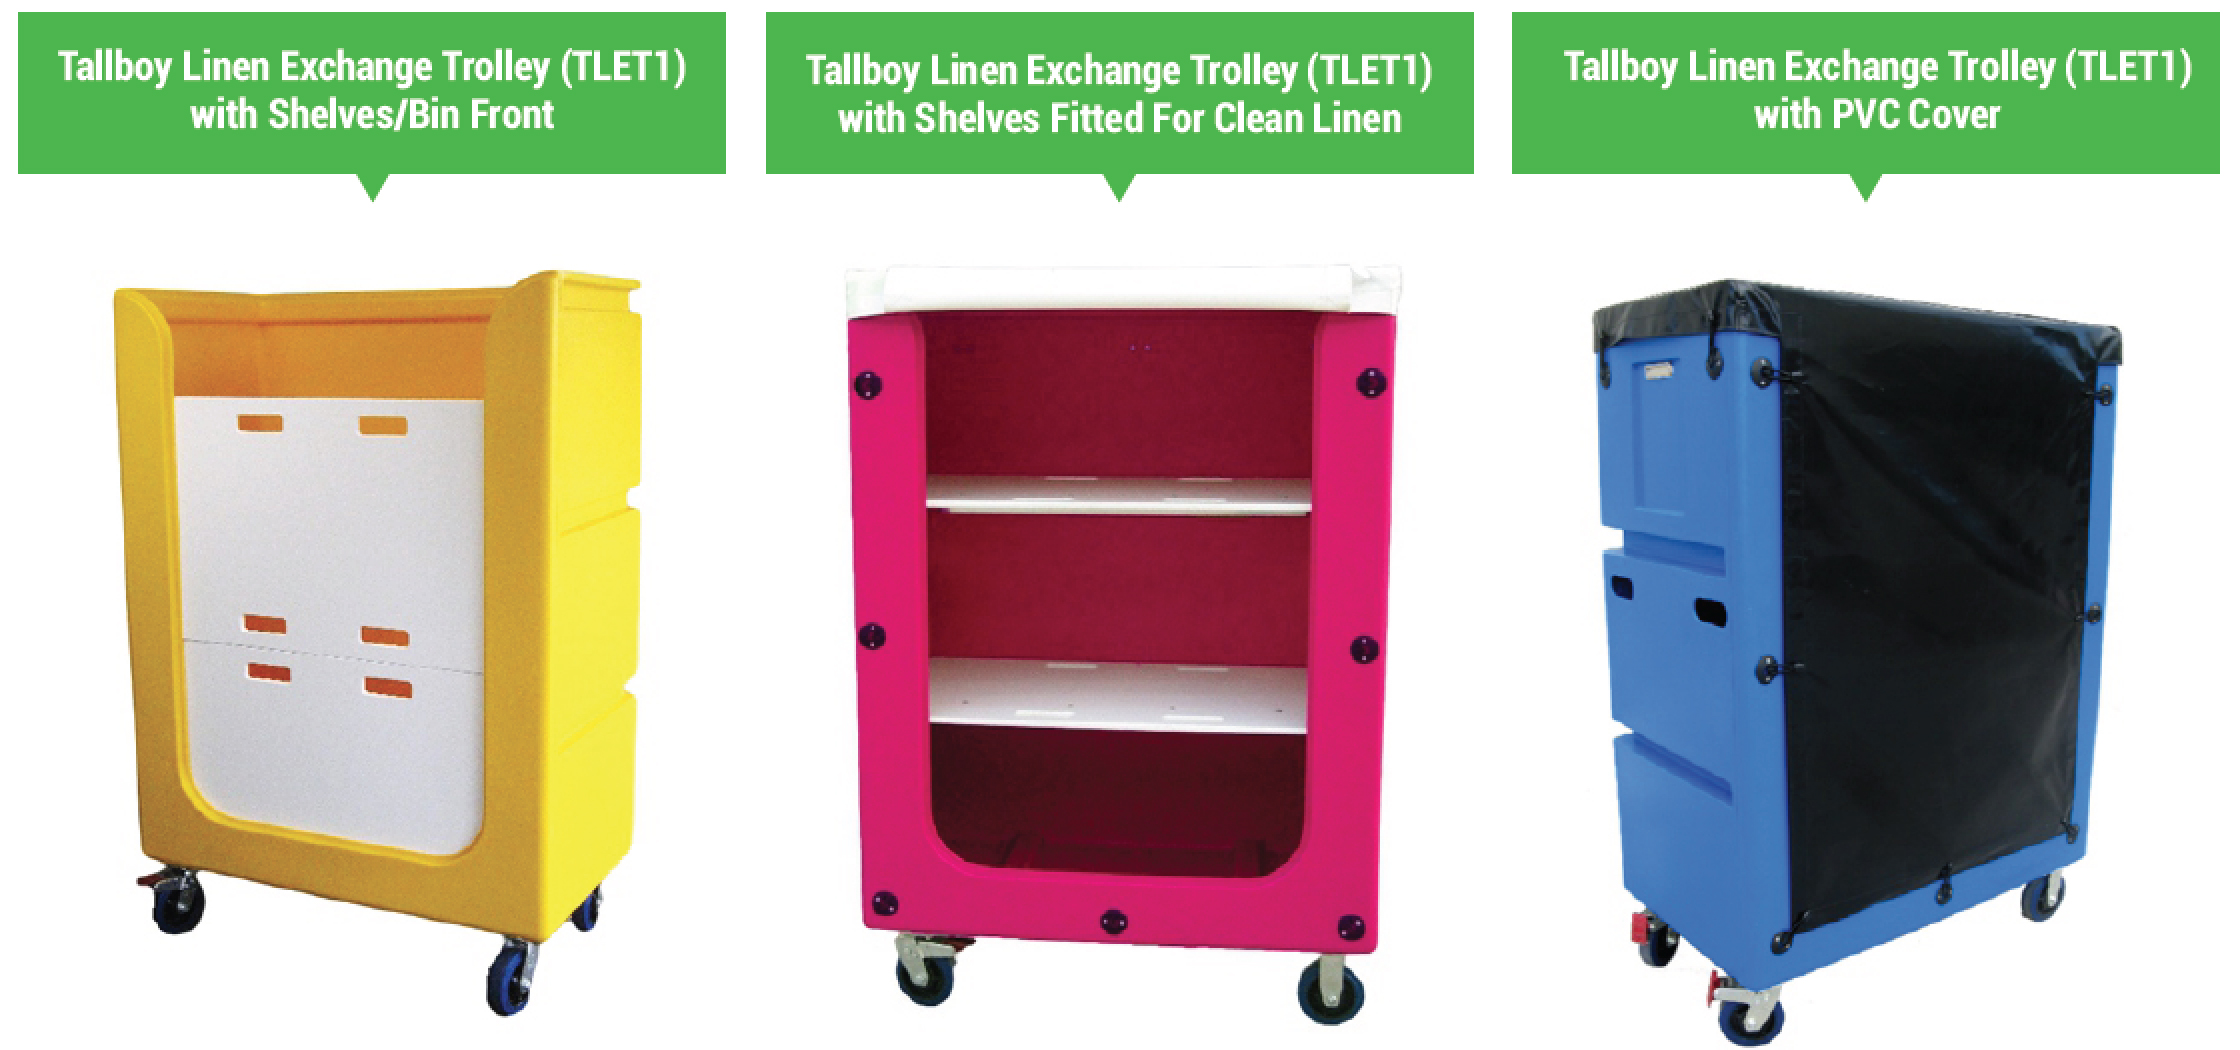 tallboy_linen-trolley_LET1_a1